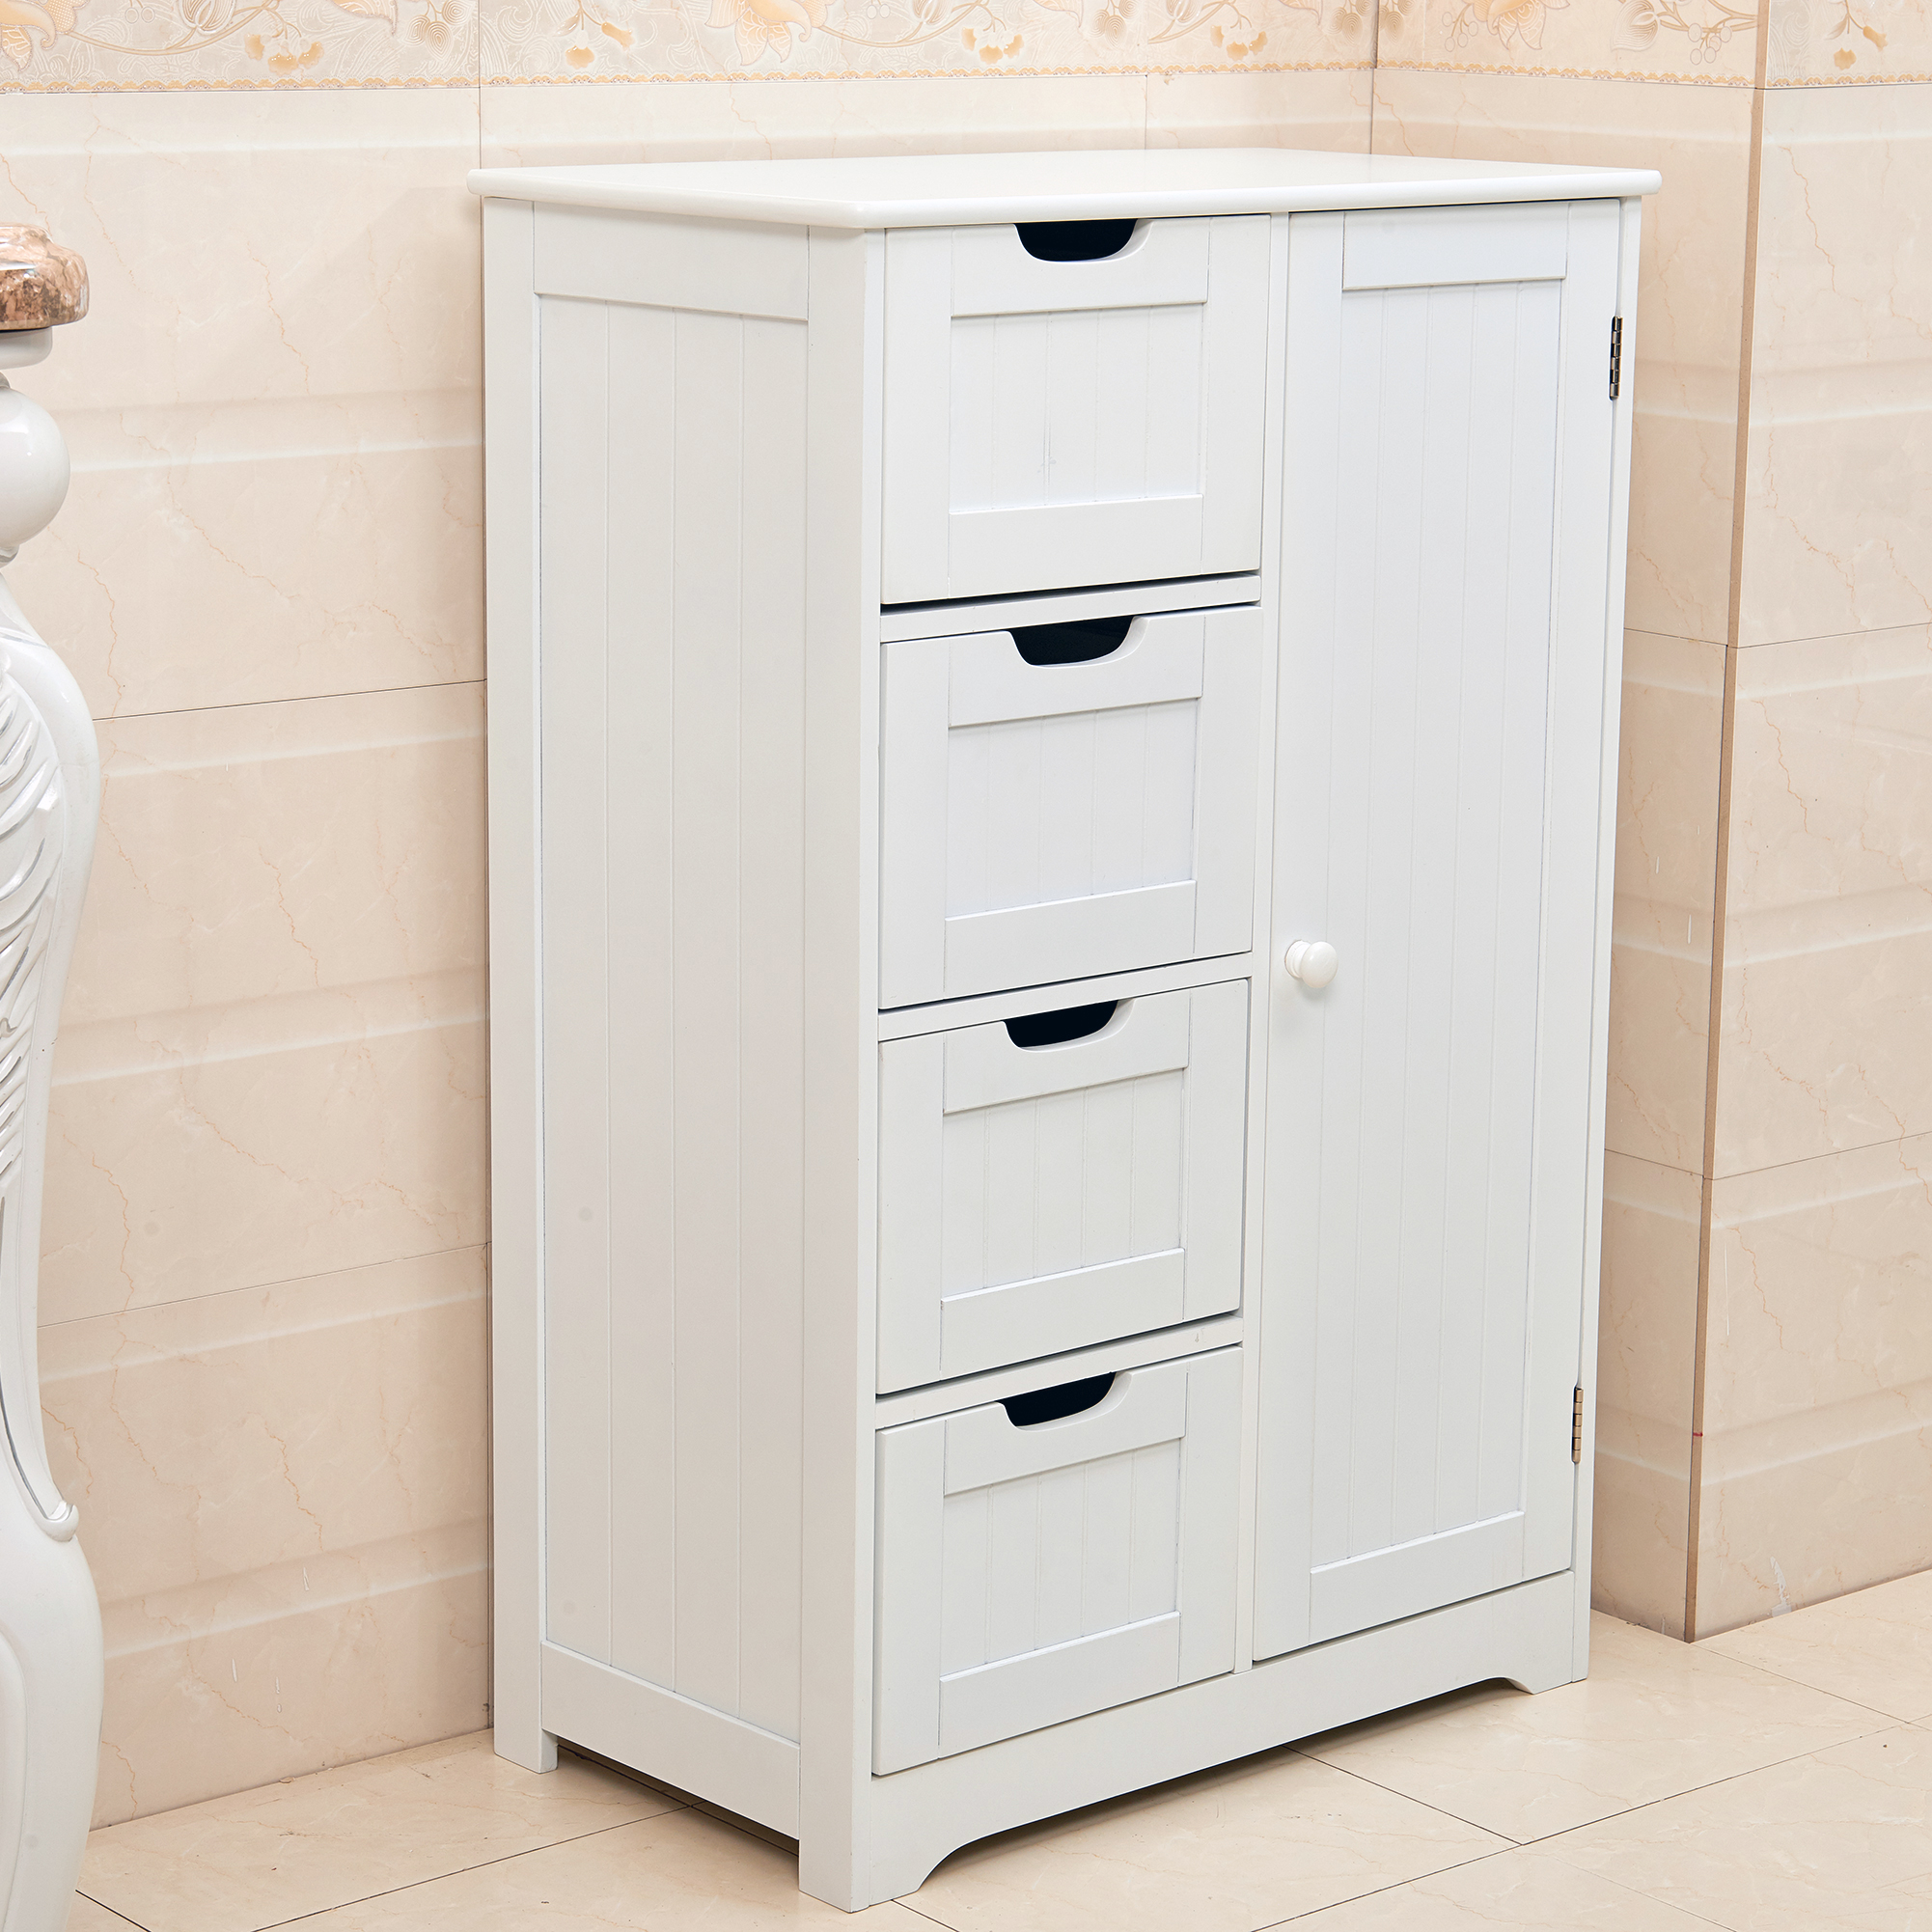 White Wooden 4 Drawer Bathroom Storage Cupboard Cabinet Free Standing Unit Bath Ebay